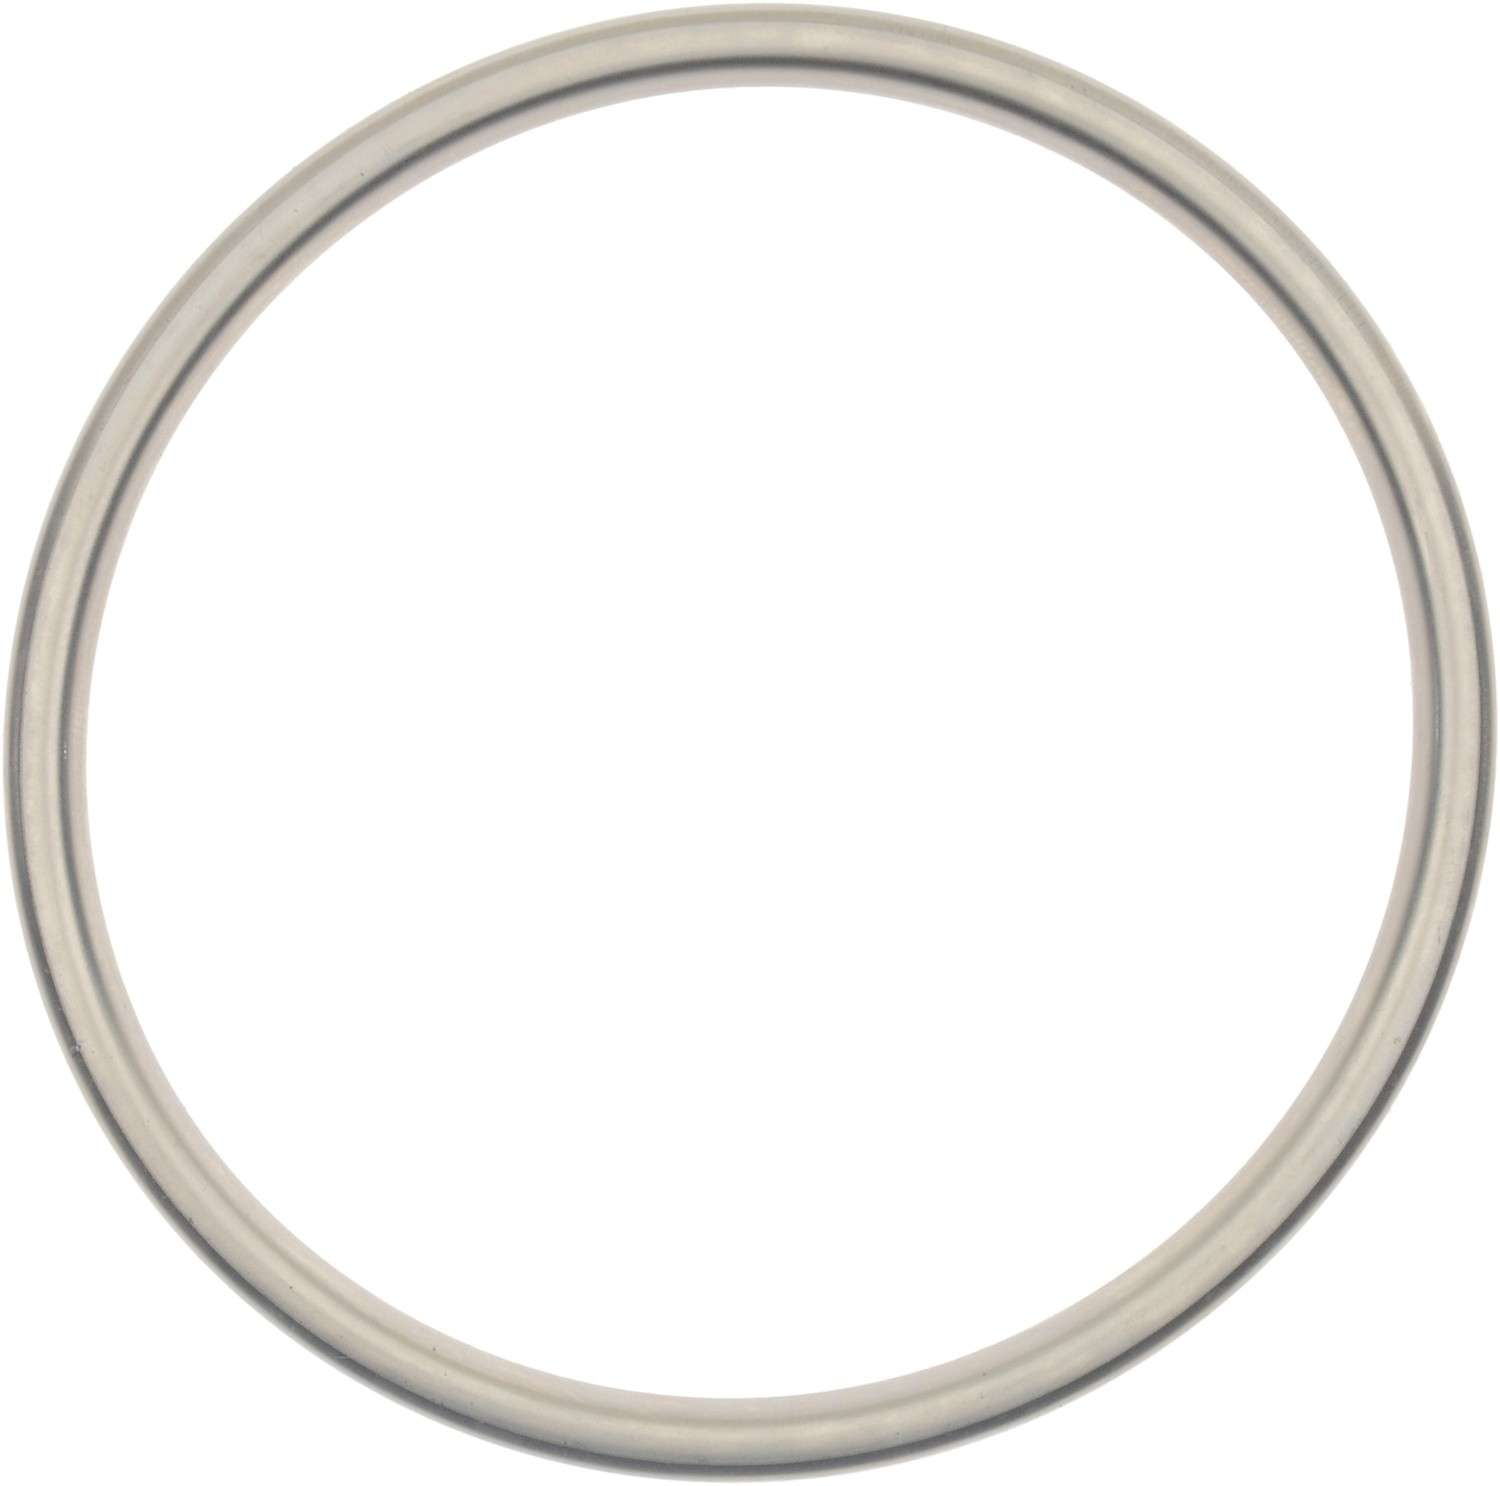 MAHLE ORIGINAL - Exhaust Pipe Flange Gasket (Left) - MHL F31618